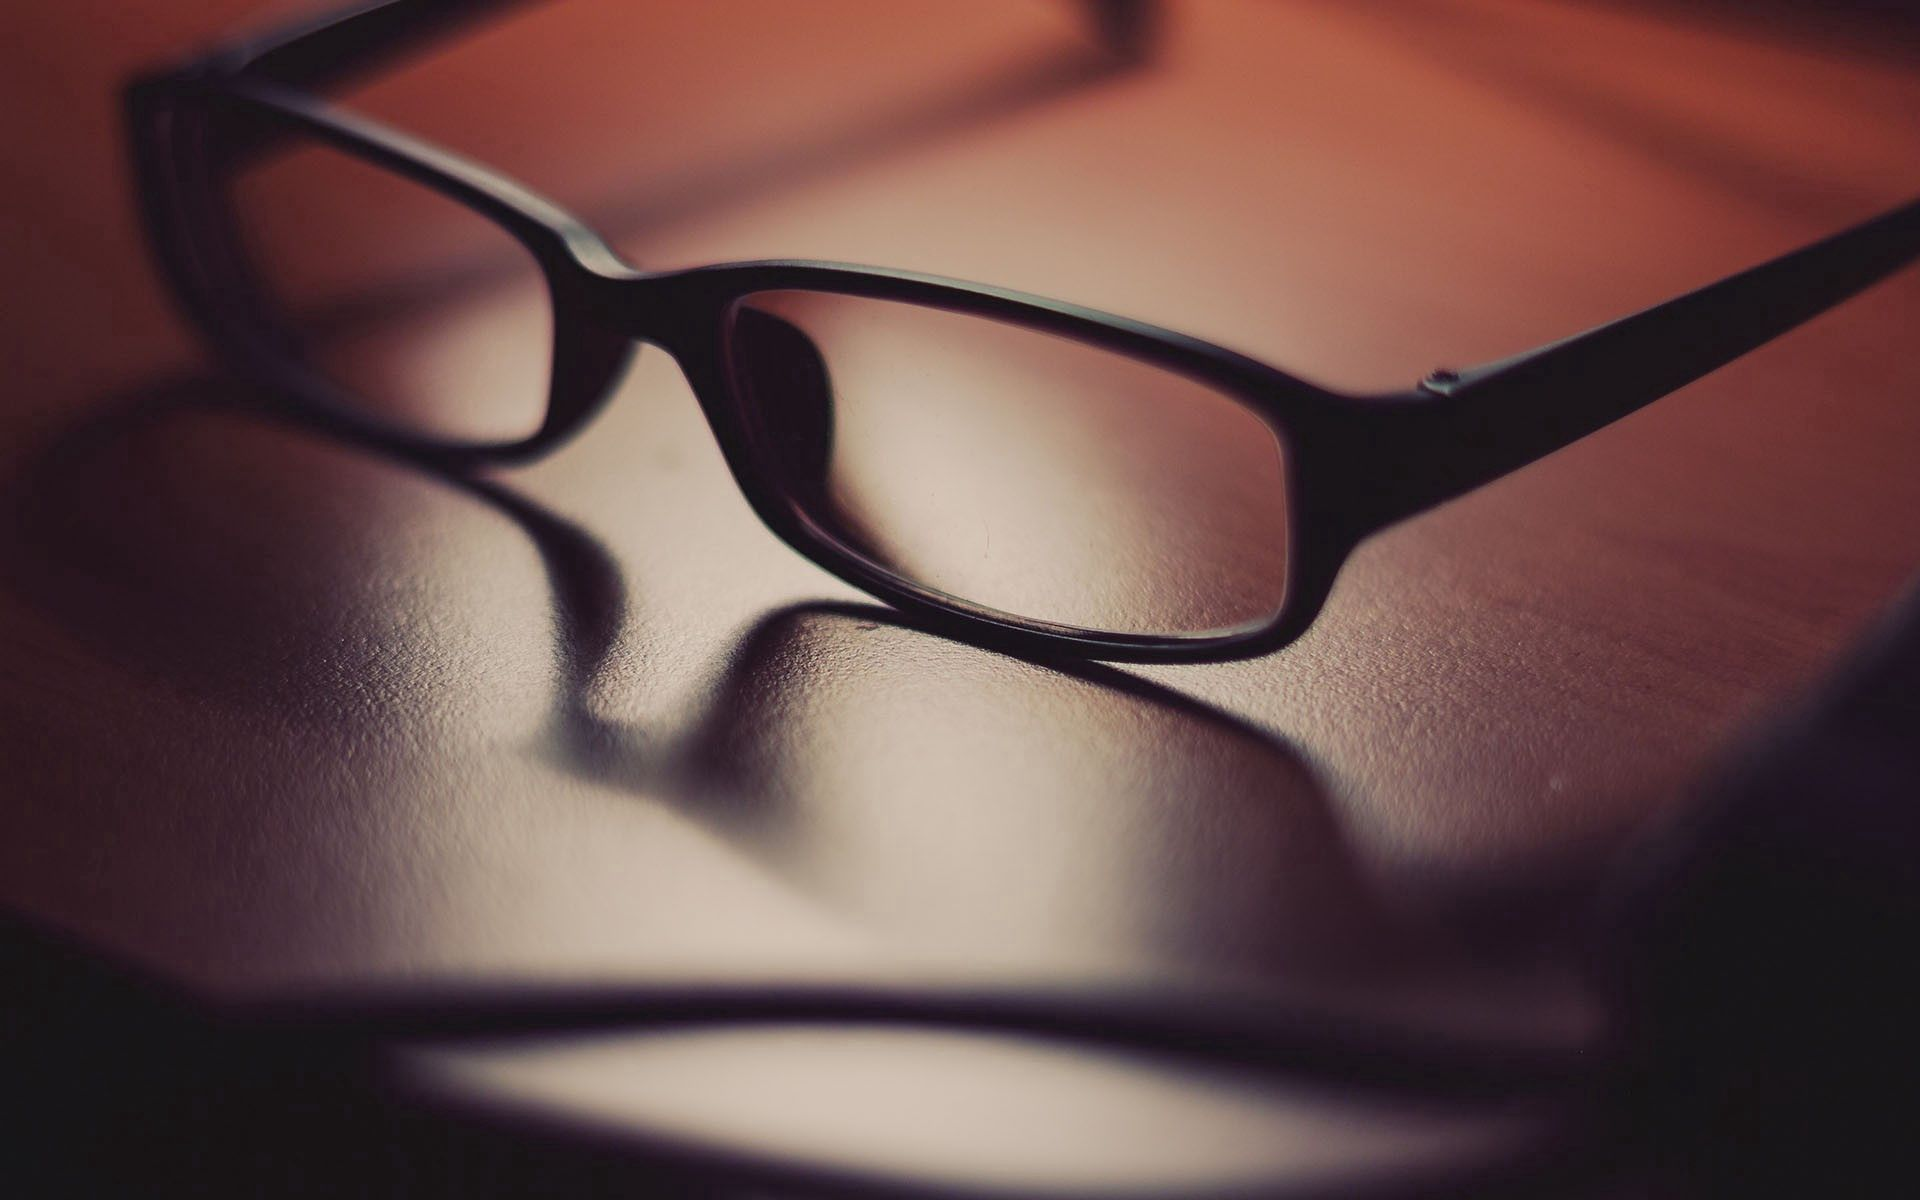 86143 download wallpaper Miscellanea, Miscellaneous, Glasses, Spectacles, Surface, Shadow, Glass, Lenses, Frame, Setting screensavers and pictures for free